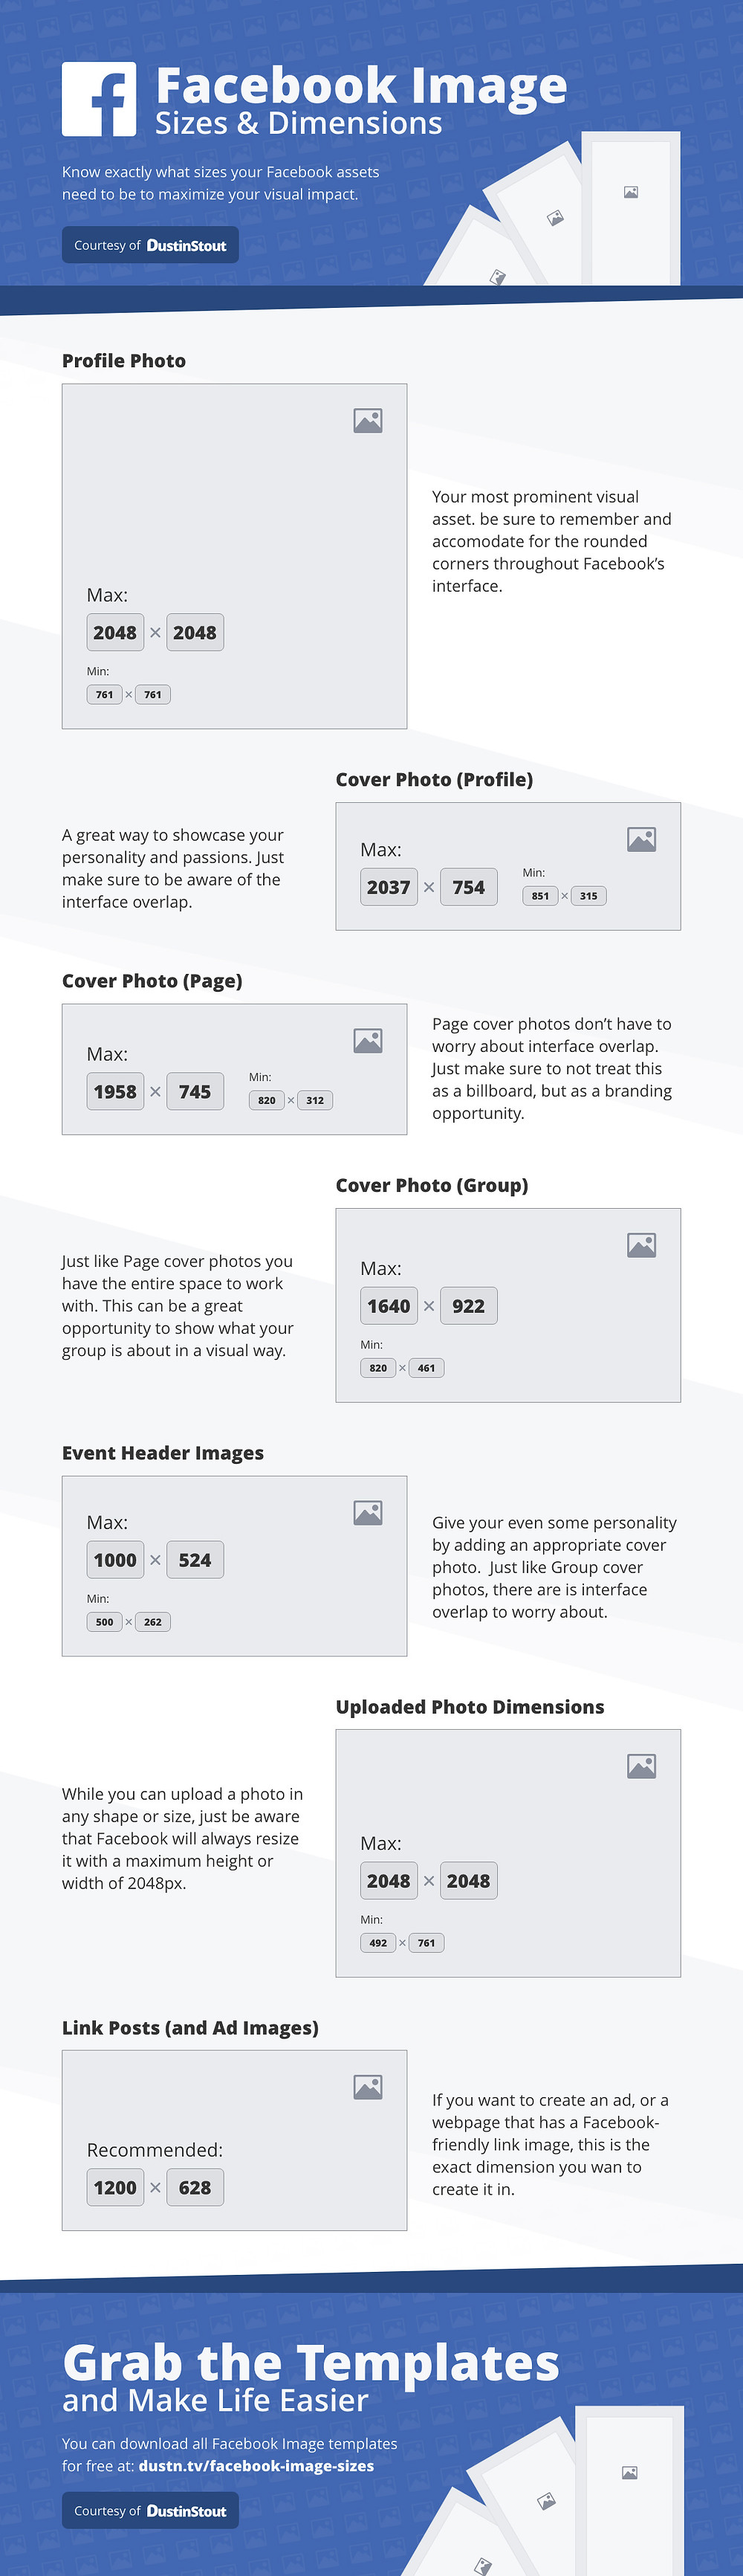 Facebook Image Sizes 2019 Infographic